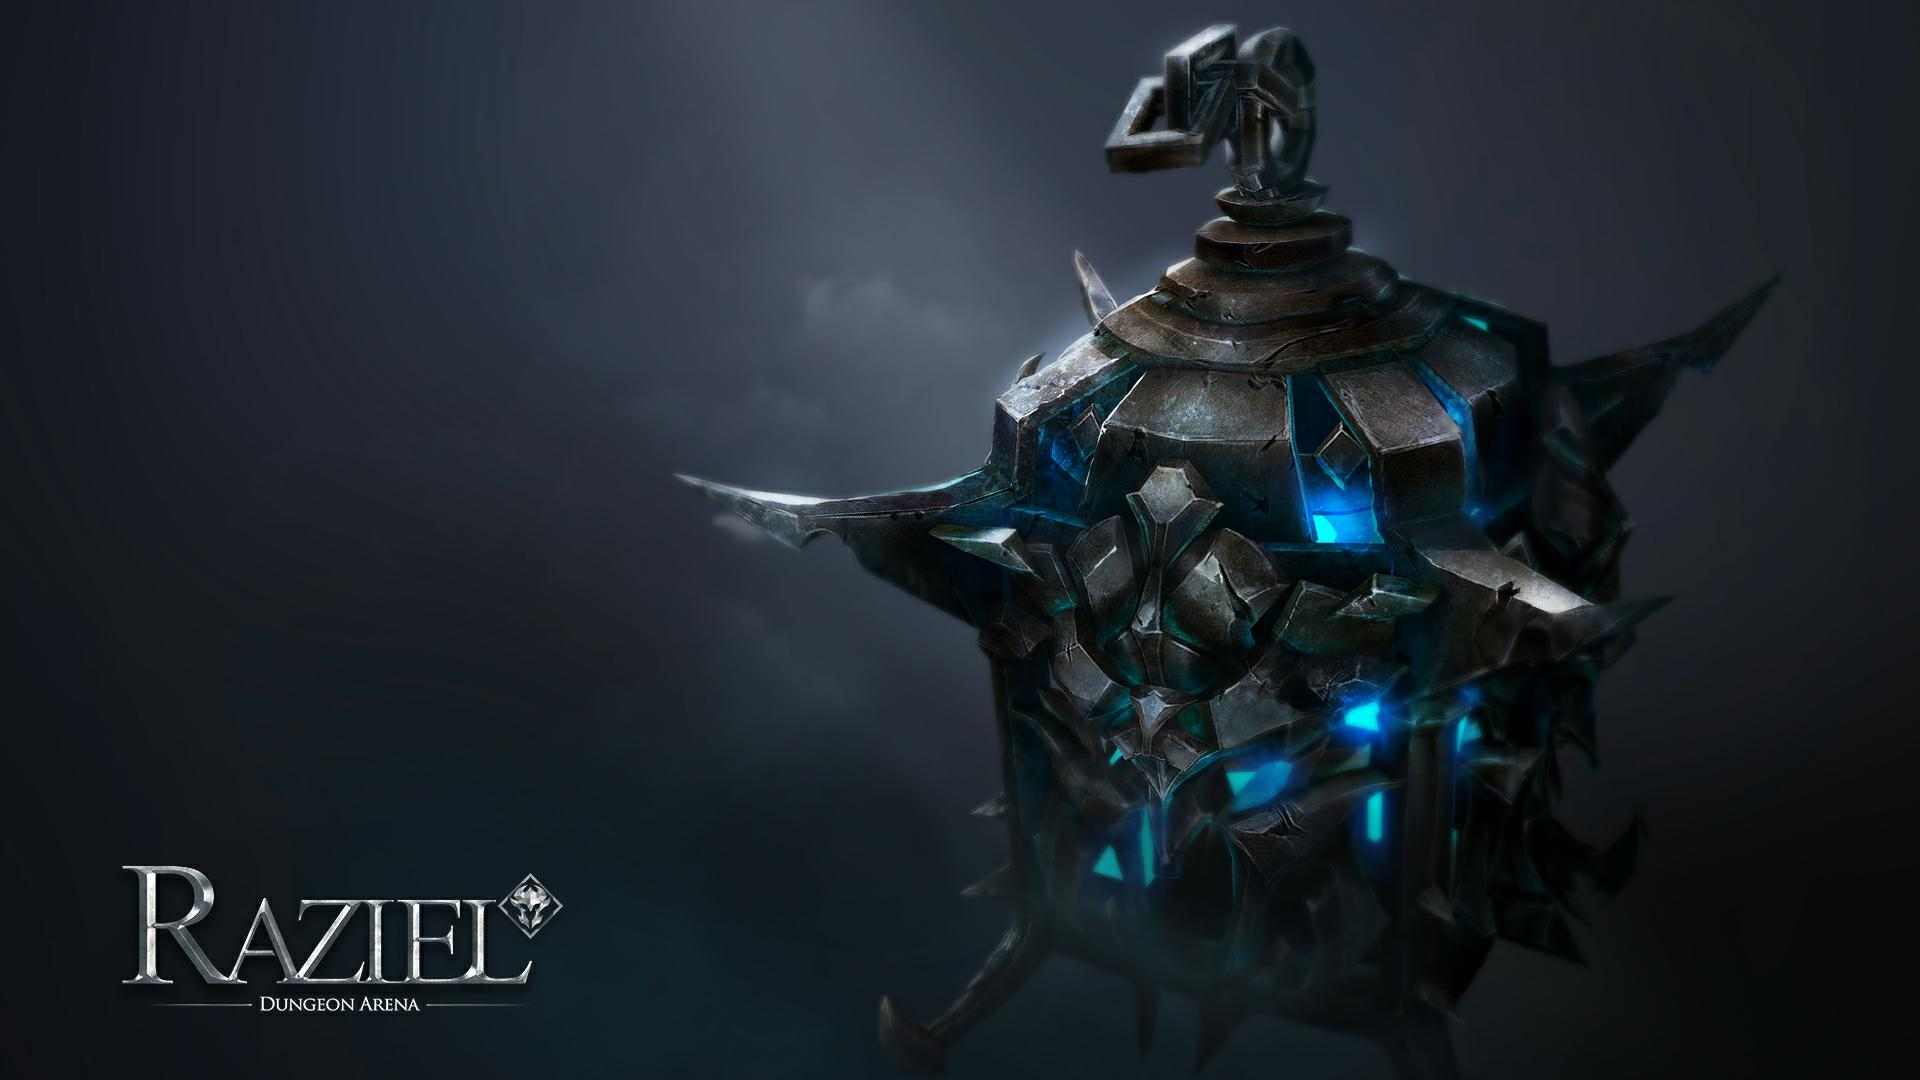 Raziel: Dungeon Arena's latest update introduces a new hero, mercenary companion system and more